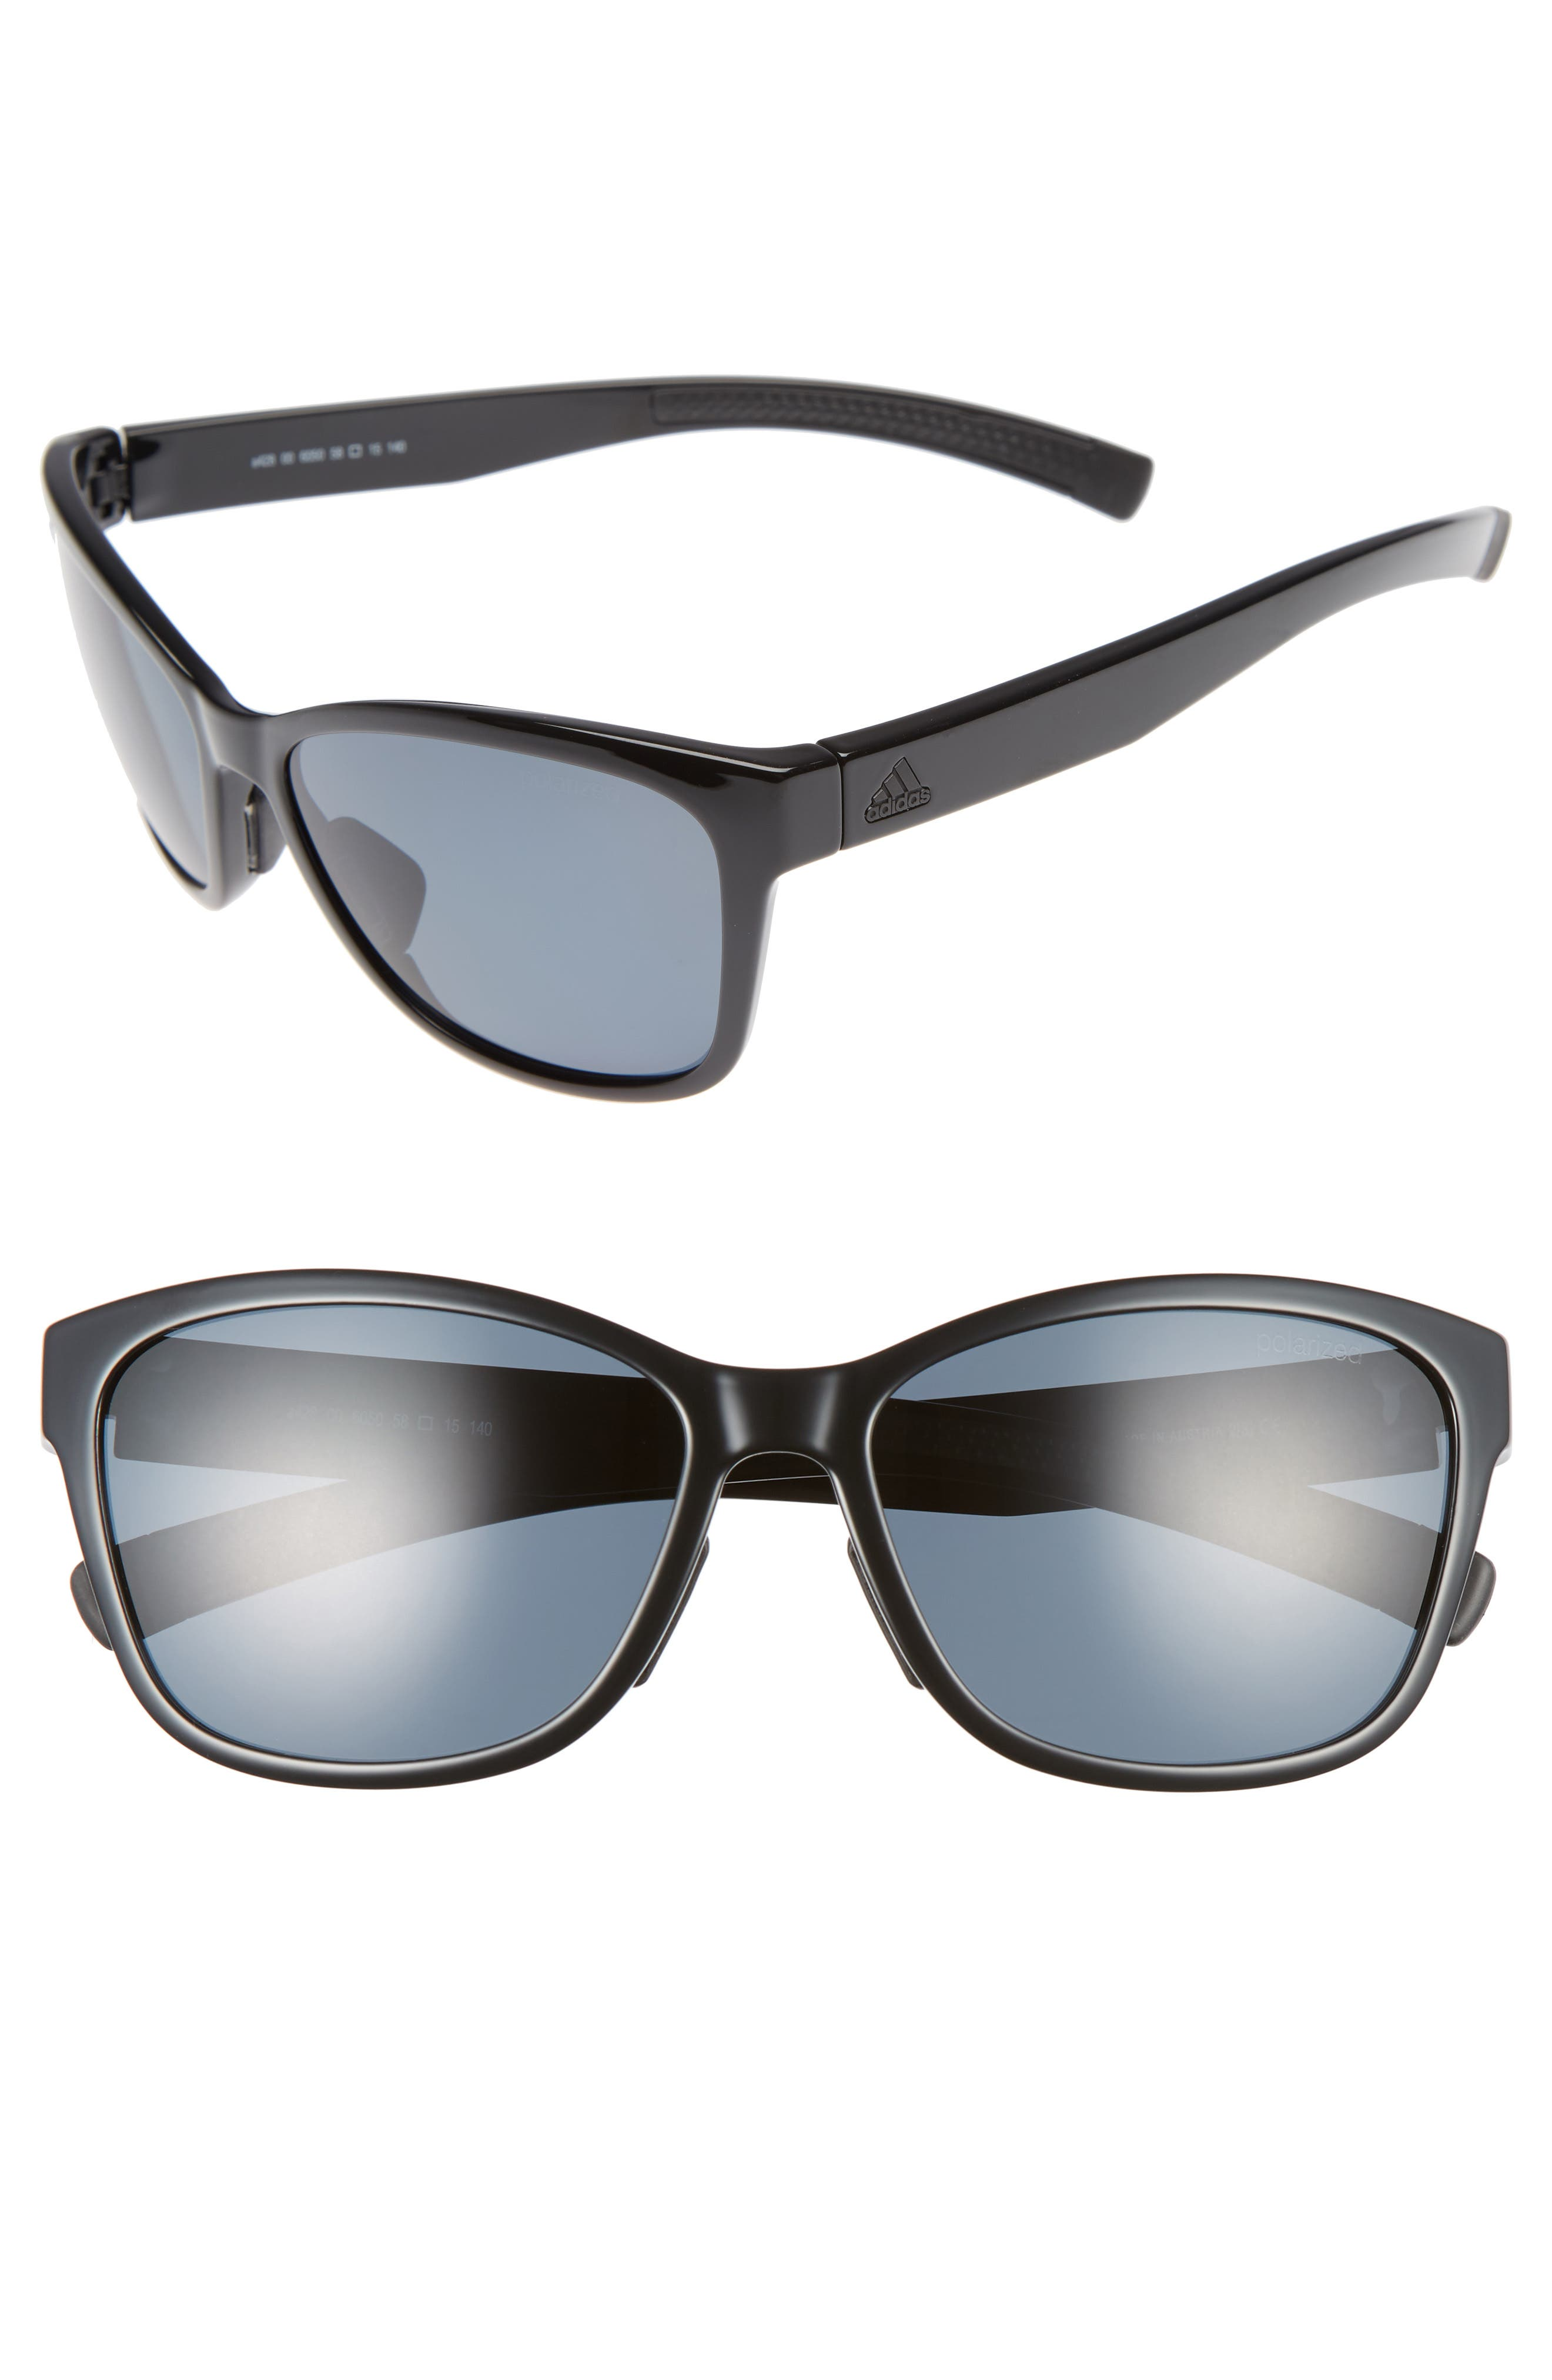 Excalate 58mm Polarized Sunglasses,                             Main thumbnail 1, color,